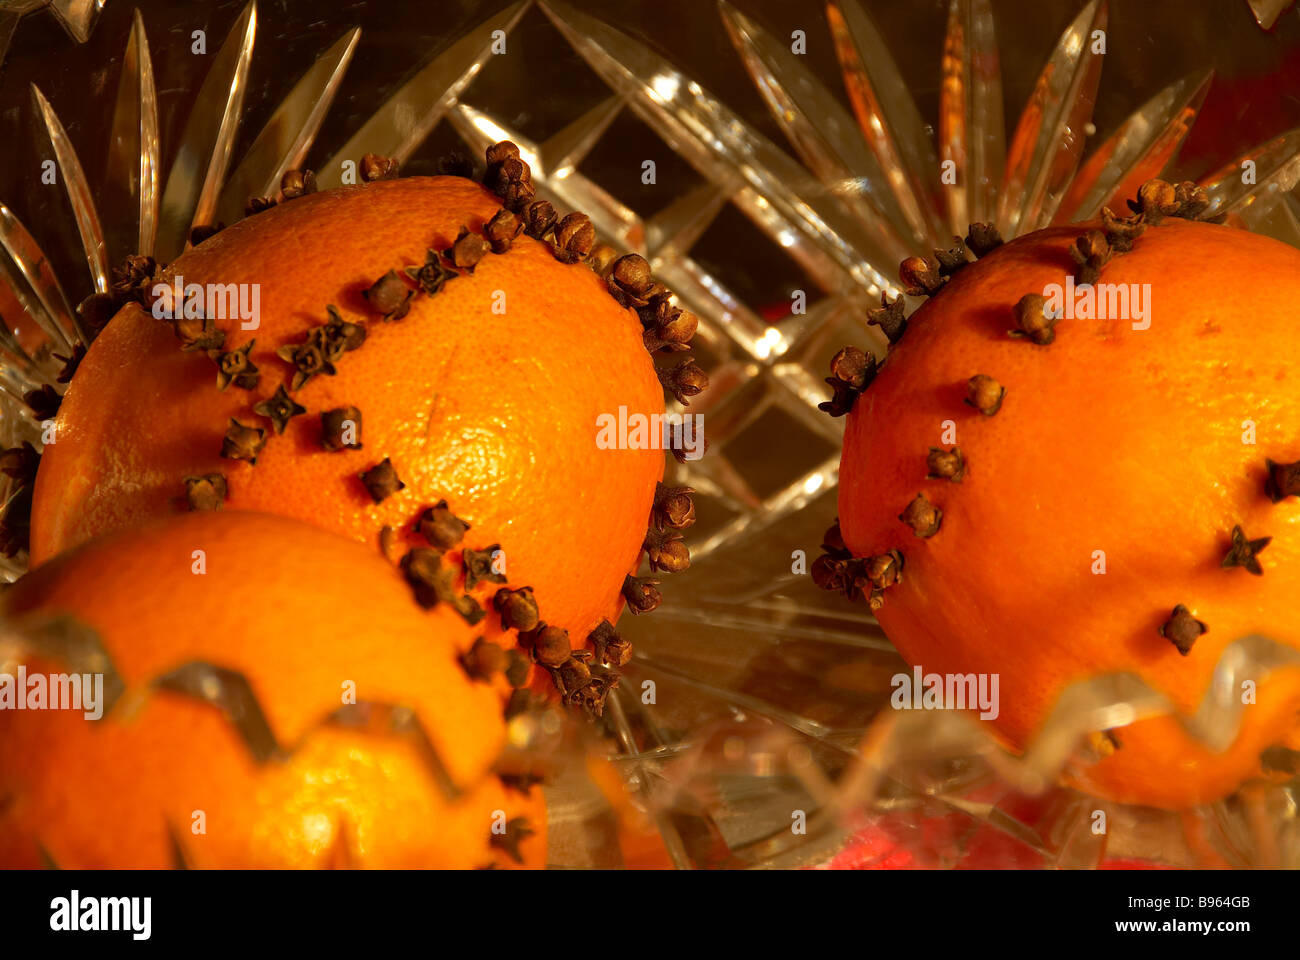 oranges with spices for Christmas Jutland Denmark - Stock Image